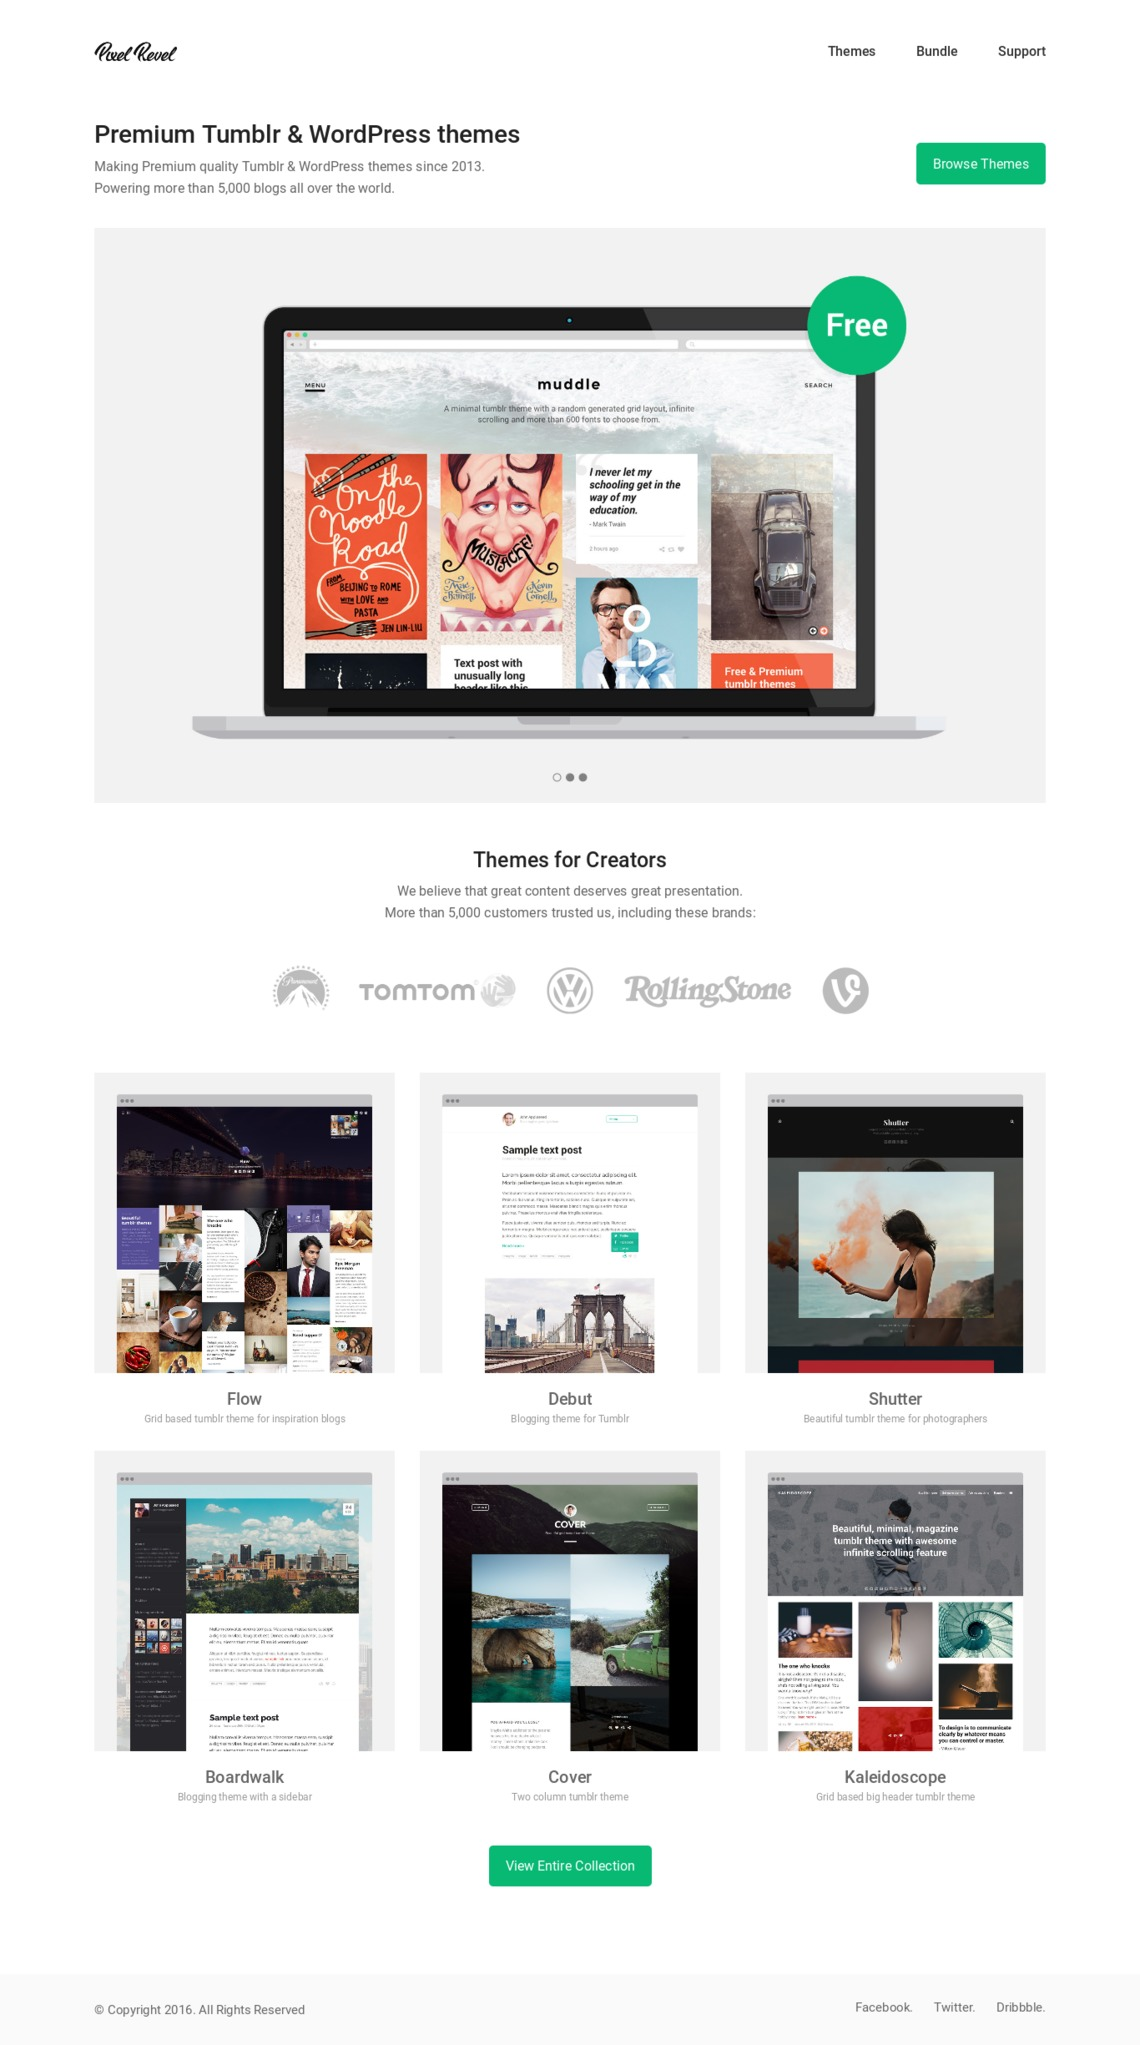 Pixel Revel | Land-book - the finest hand-picked website inspirations